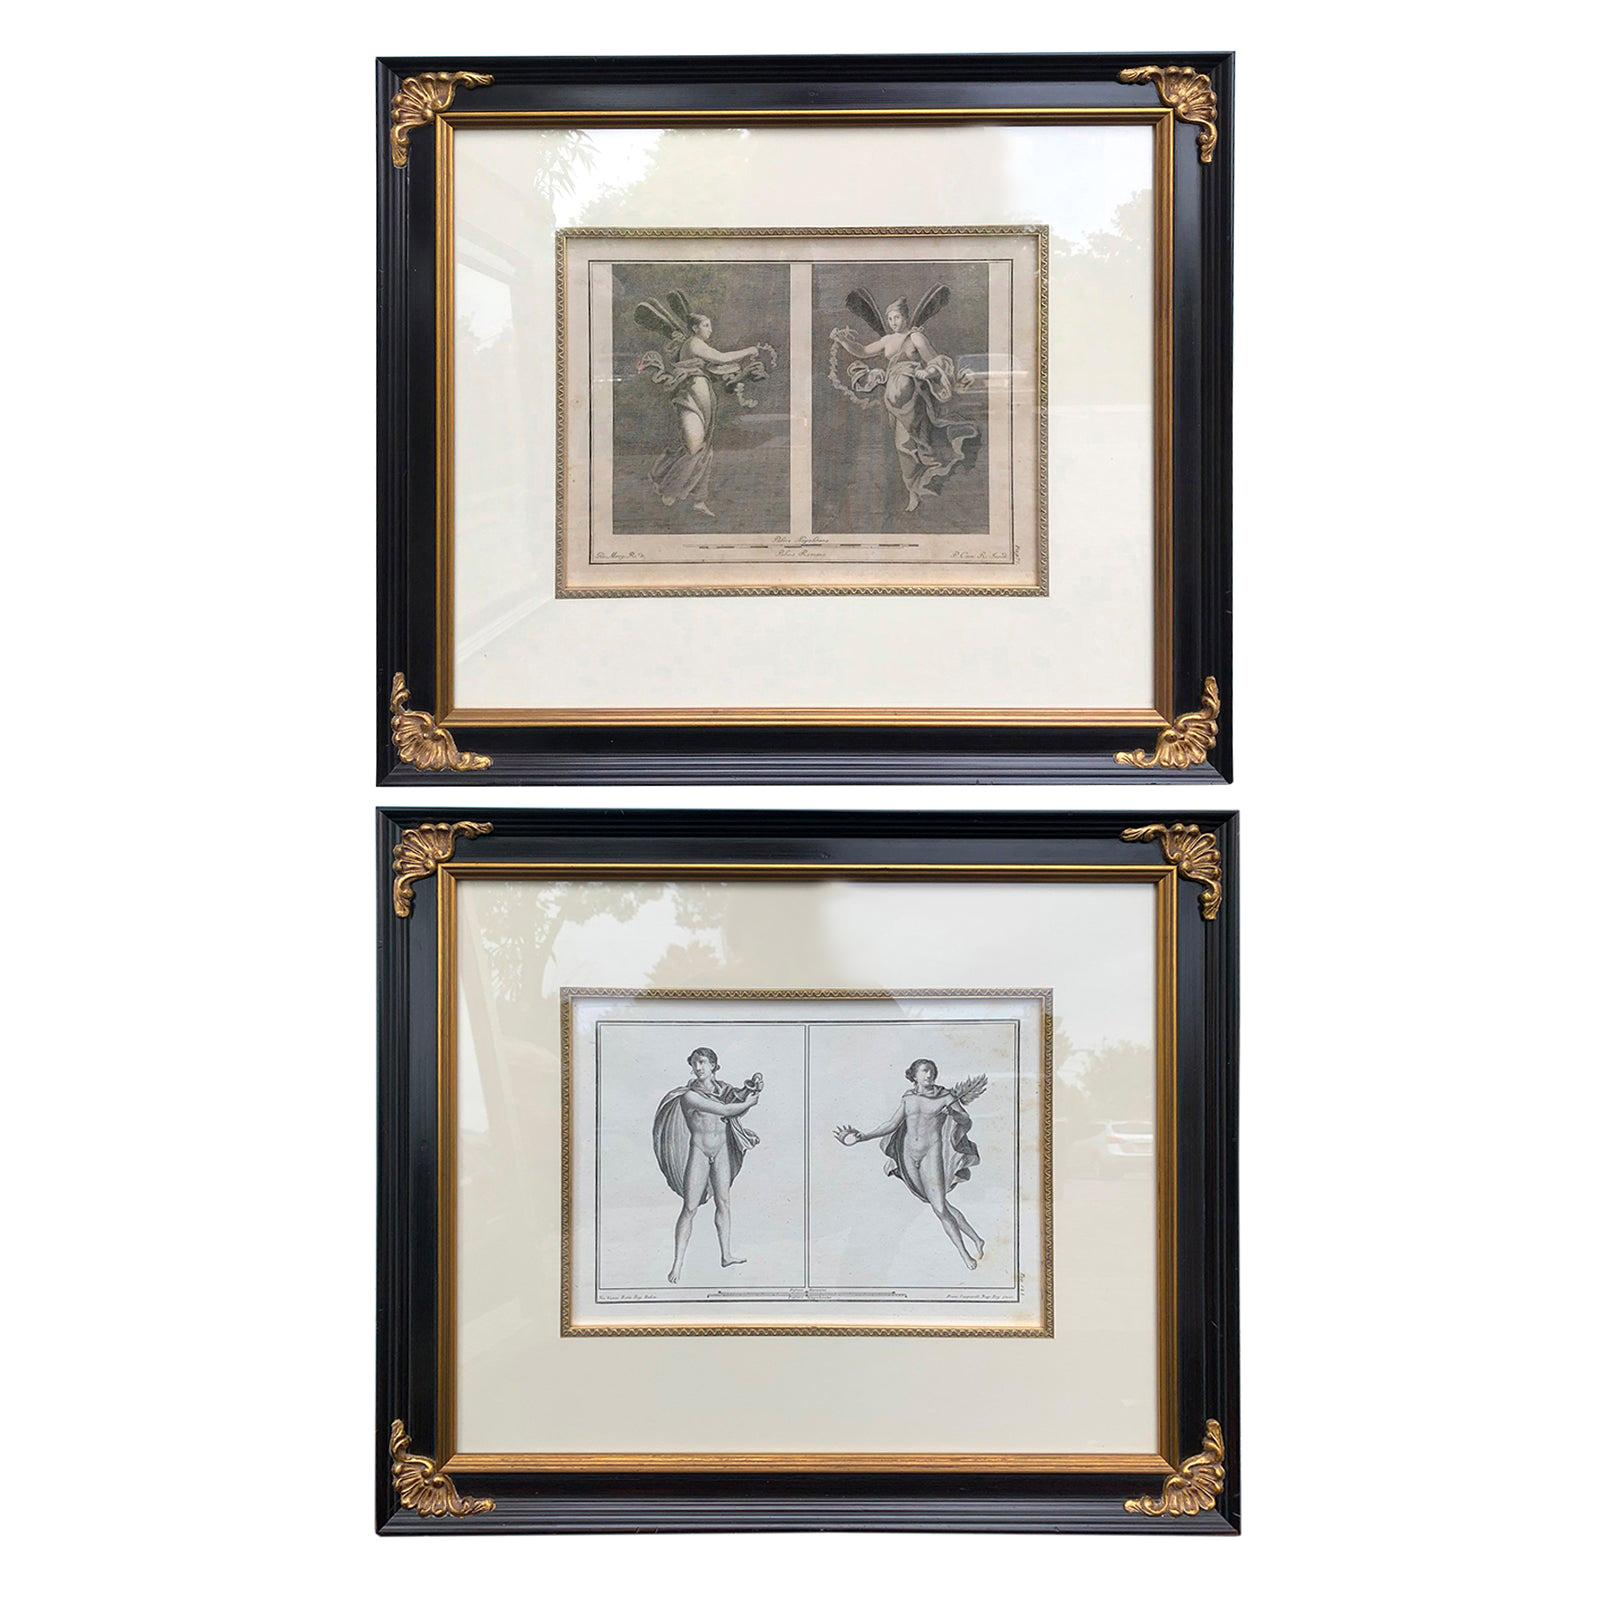 Pair of Italian Engravings of Ruins of Herculaneum by Giovanni Morghen